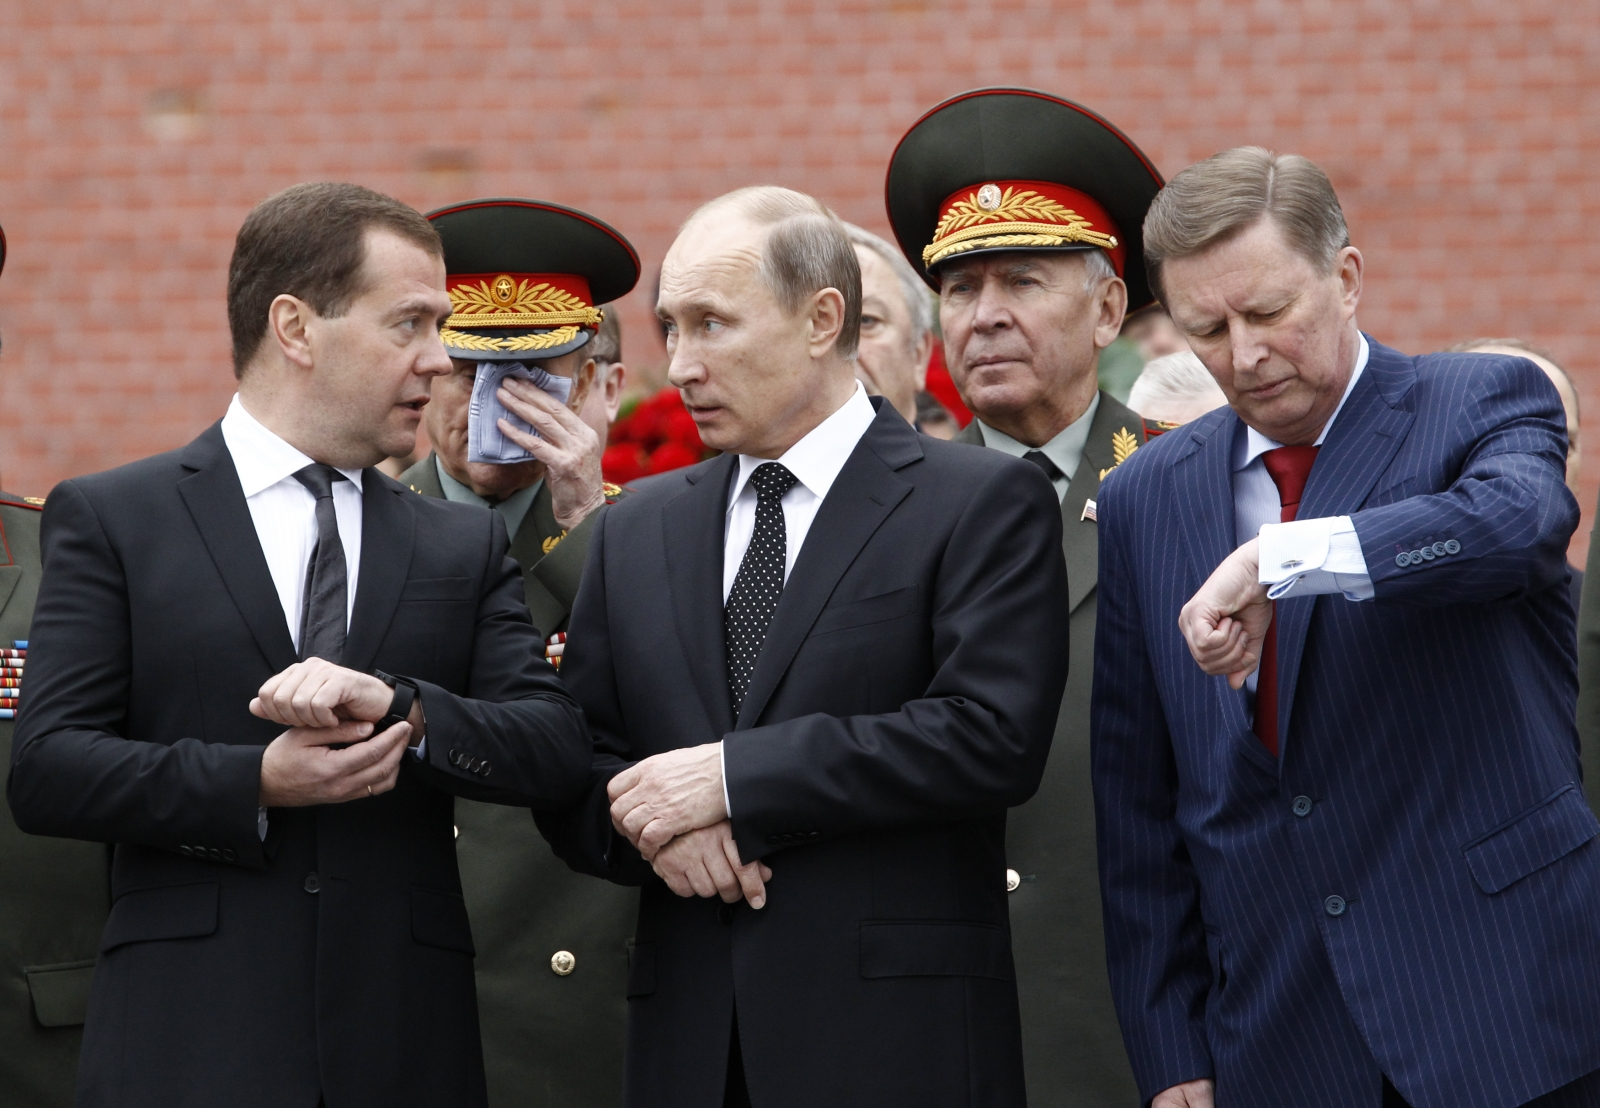 Russia's President Vladimir Putin (C), Prime Minister Dmitry Medvedev (L, front) and Chief of Staff of the Presidential Administration Sergei Ivanov (R, front)